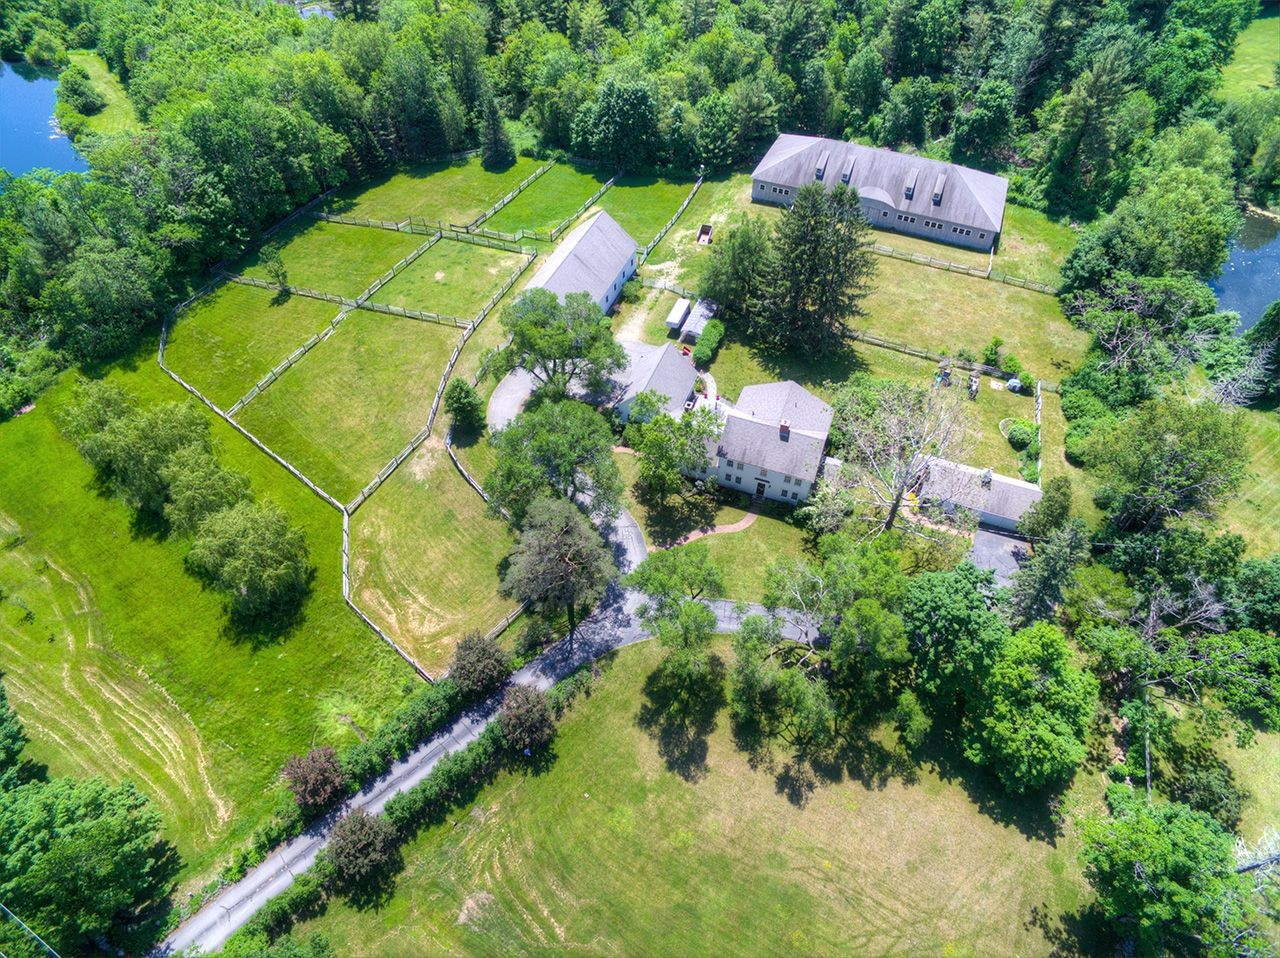 spalding common farm a luxury single family home for sale in amherst, new hampshire property id 380798992 christie s international real estate